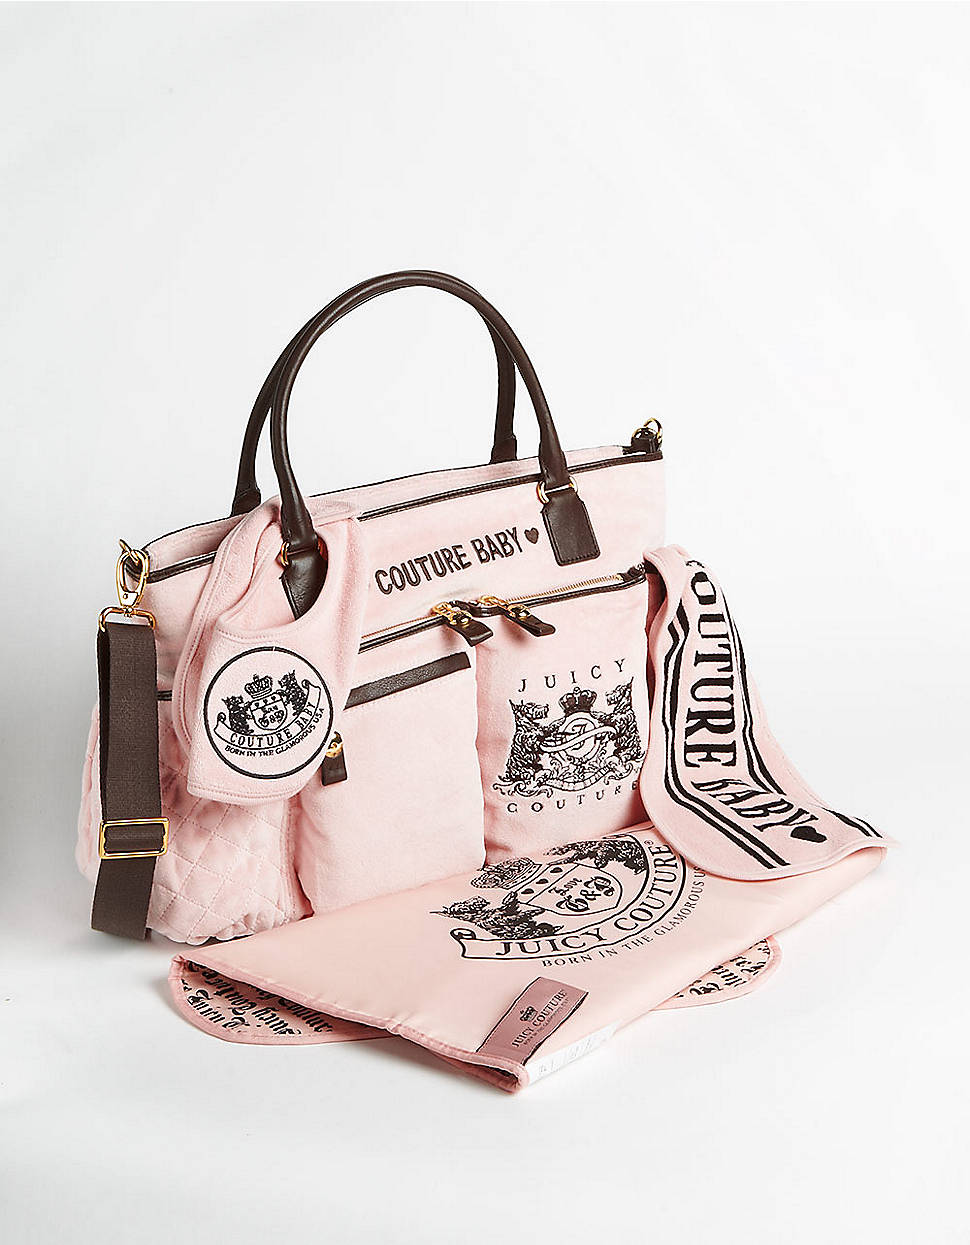 how to clean juicy couture velour bag